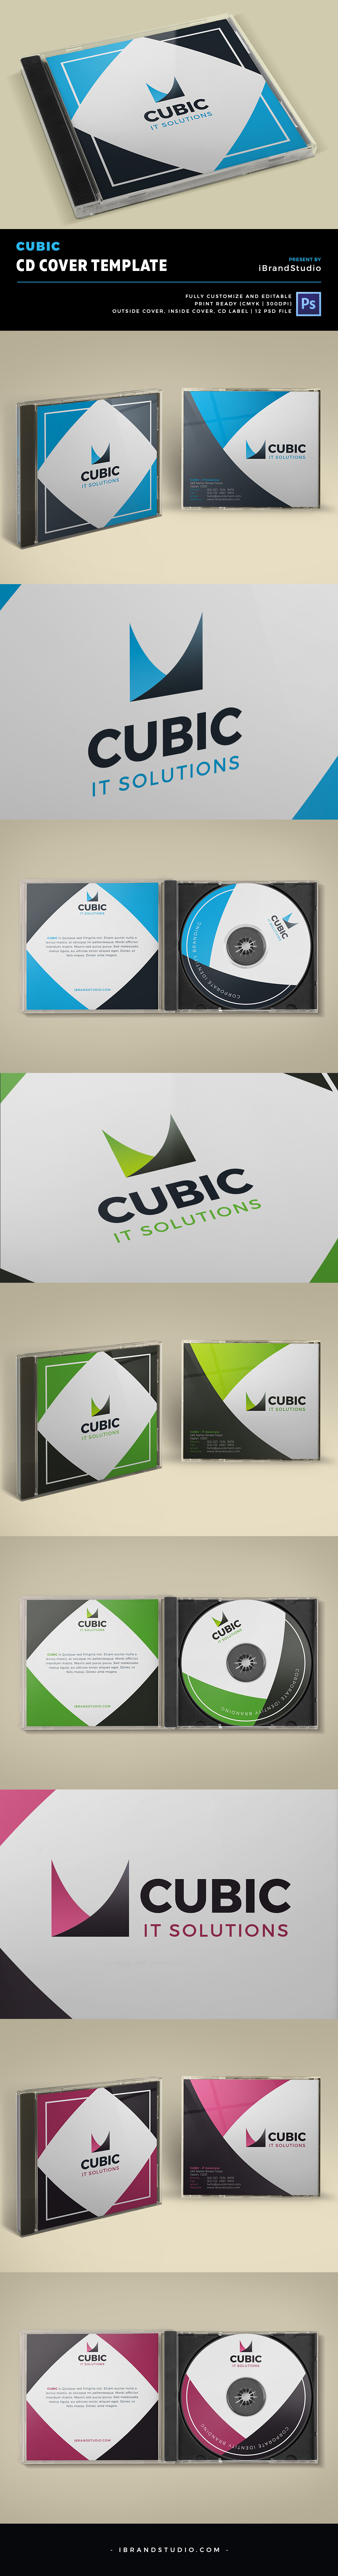 Cubic - Free CD Cover Design Template